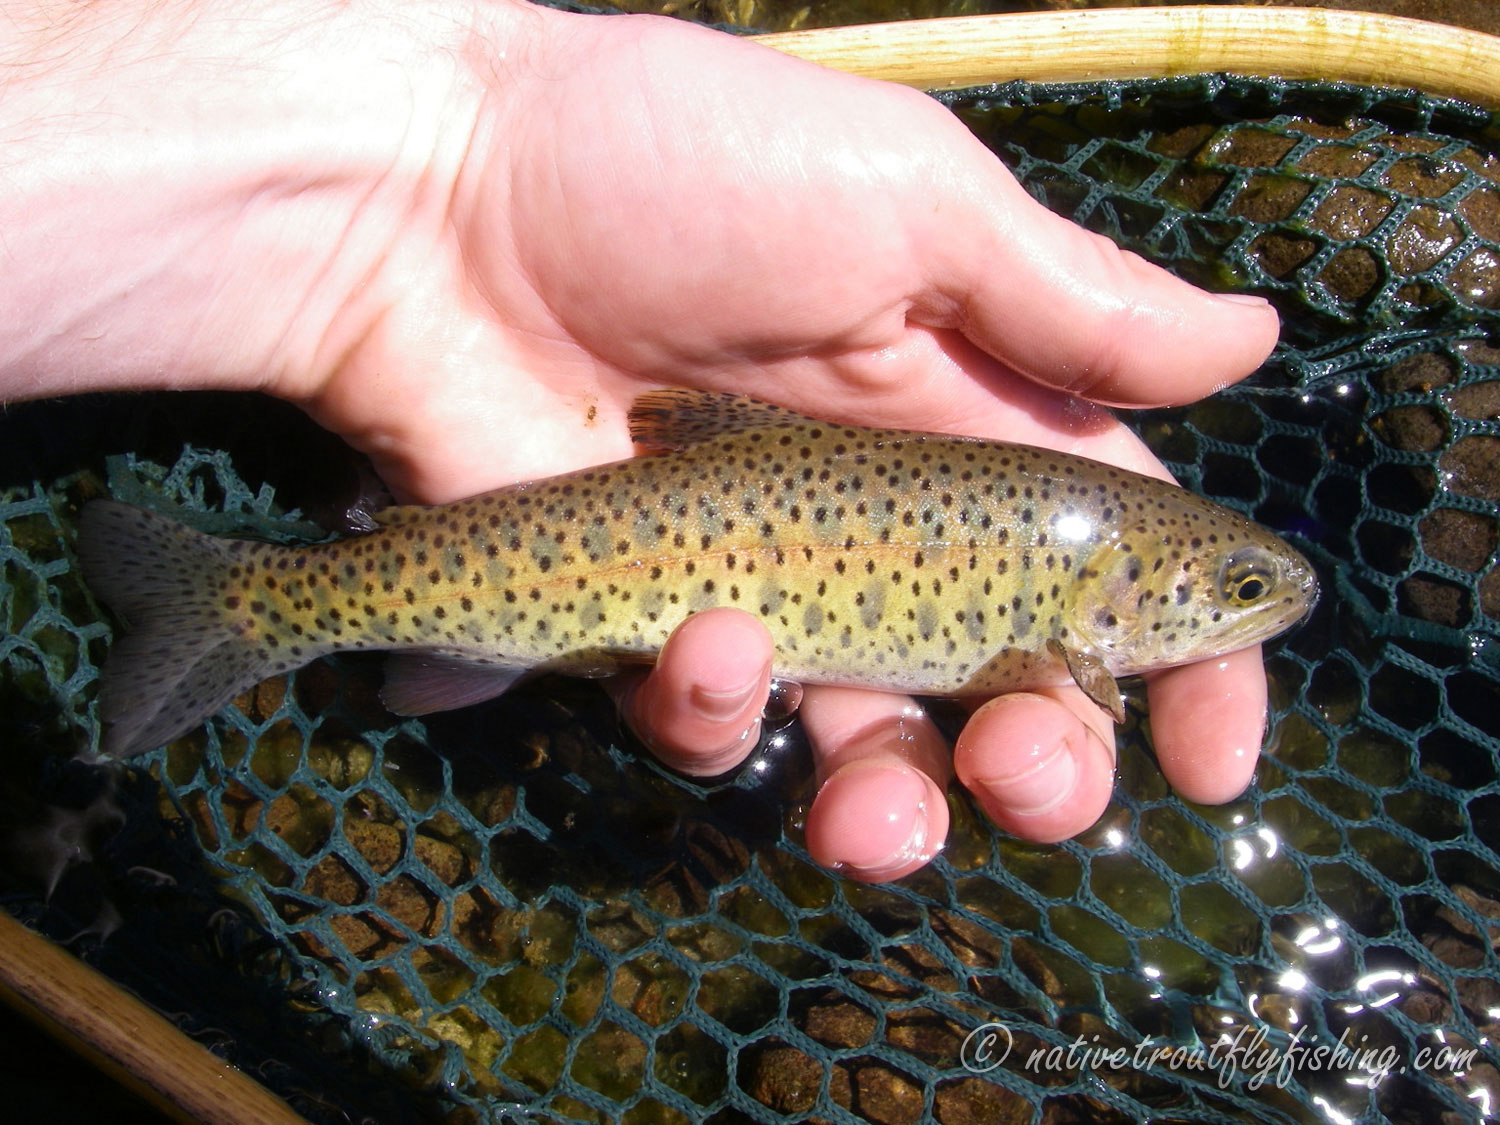 Native Trout Fly Fishing: Lahontan Cutthroat Trout